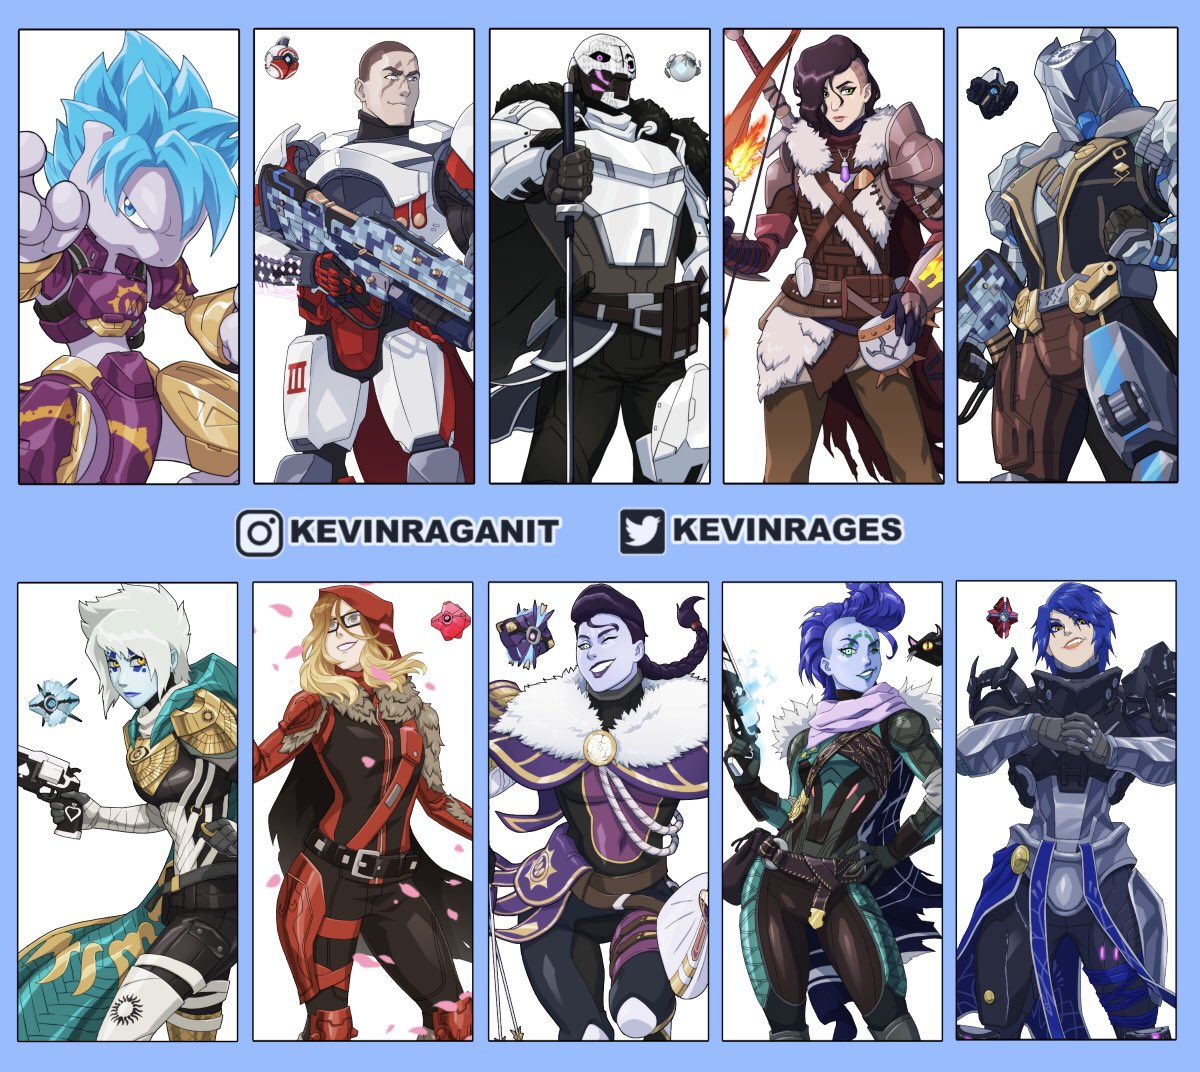 Replying to @KevinRAGES: February Commissions overview 🔥